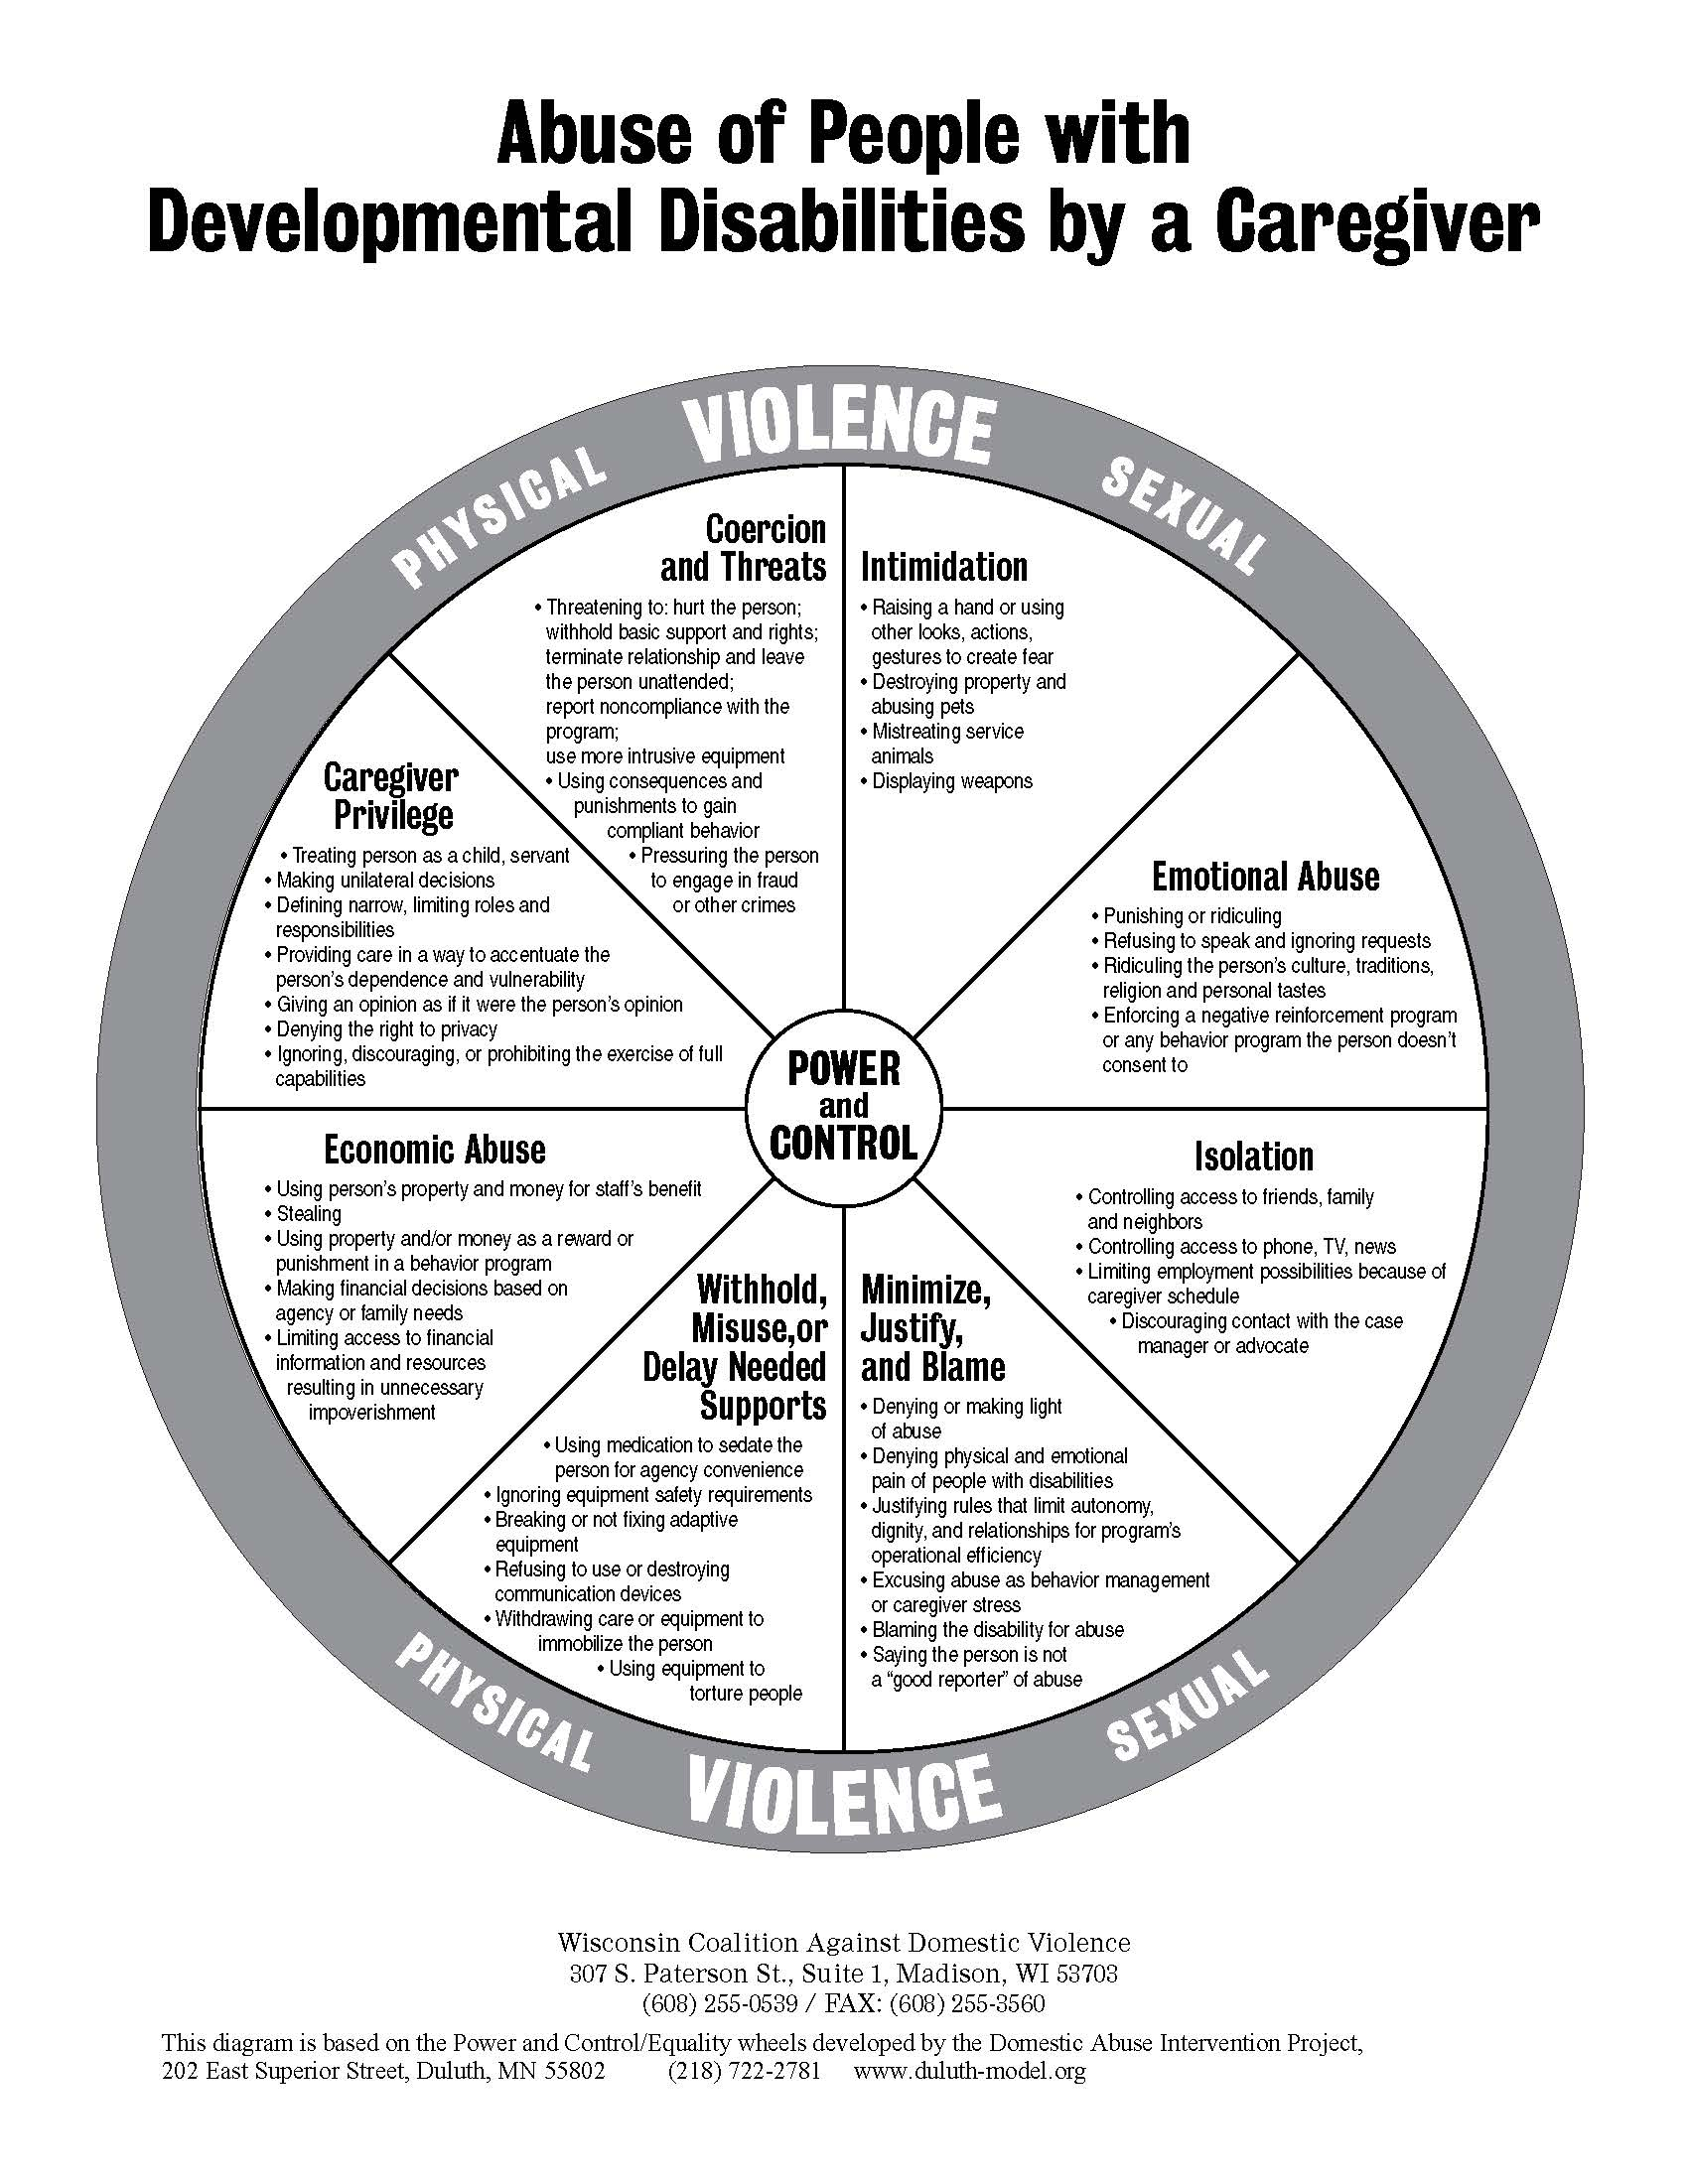 Abuse of People with Developmental Disabilities by a Caregiver infographic